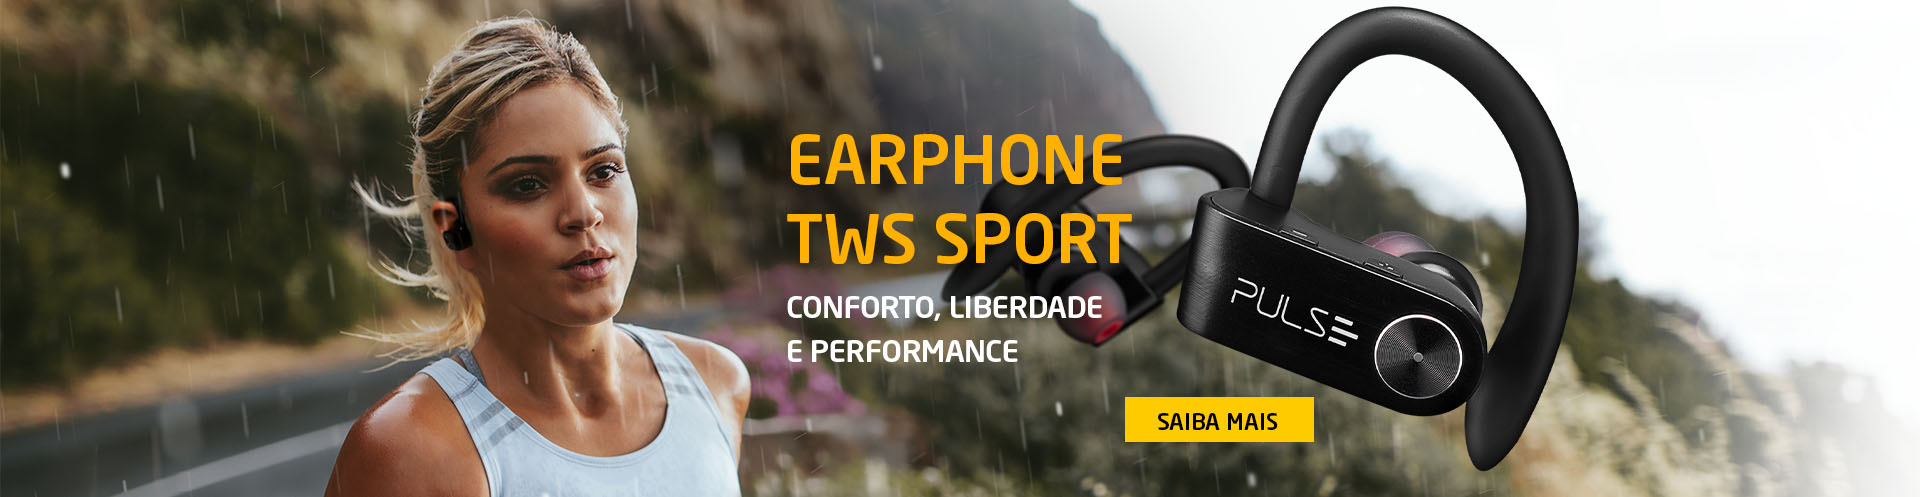 Earphone tws sports